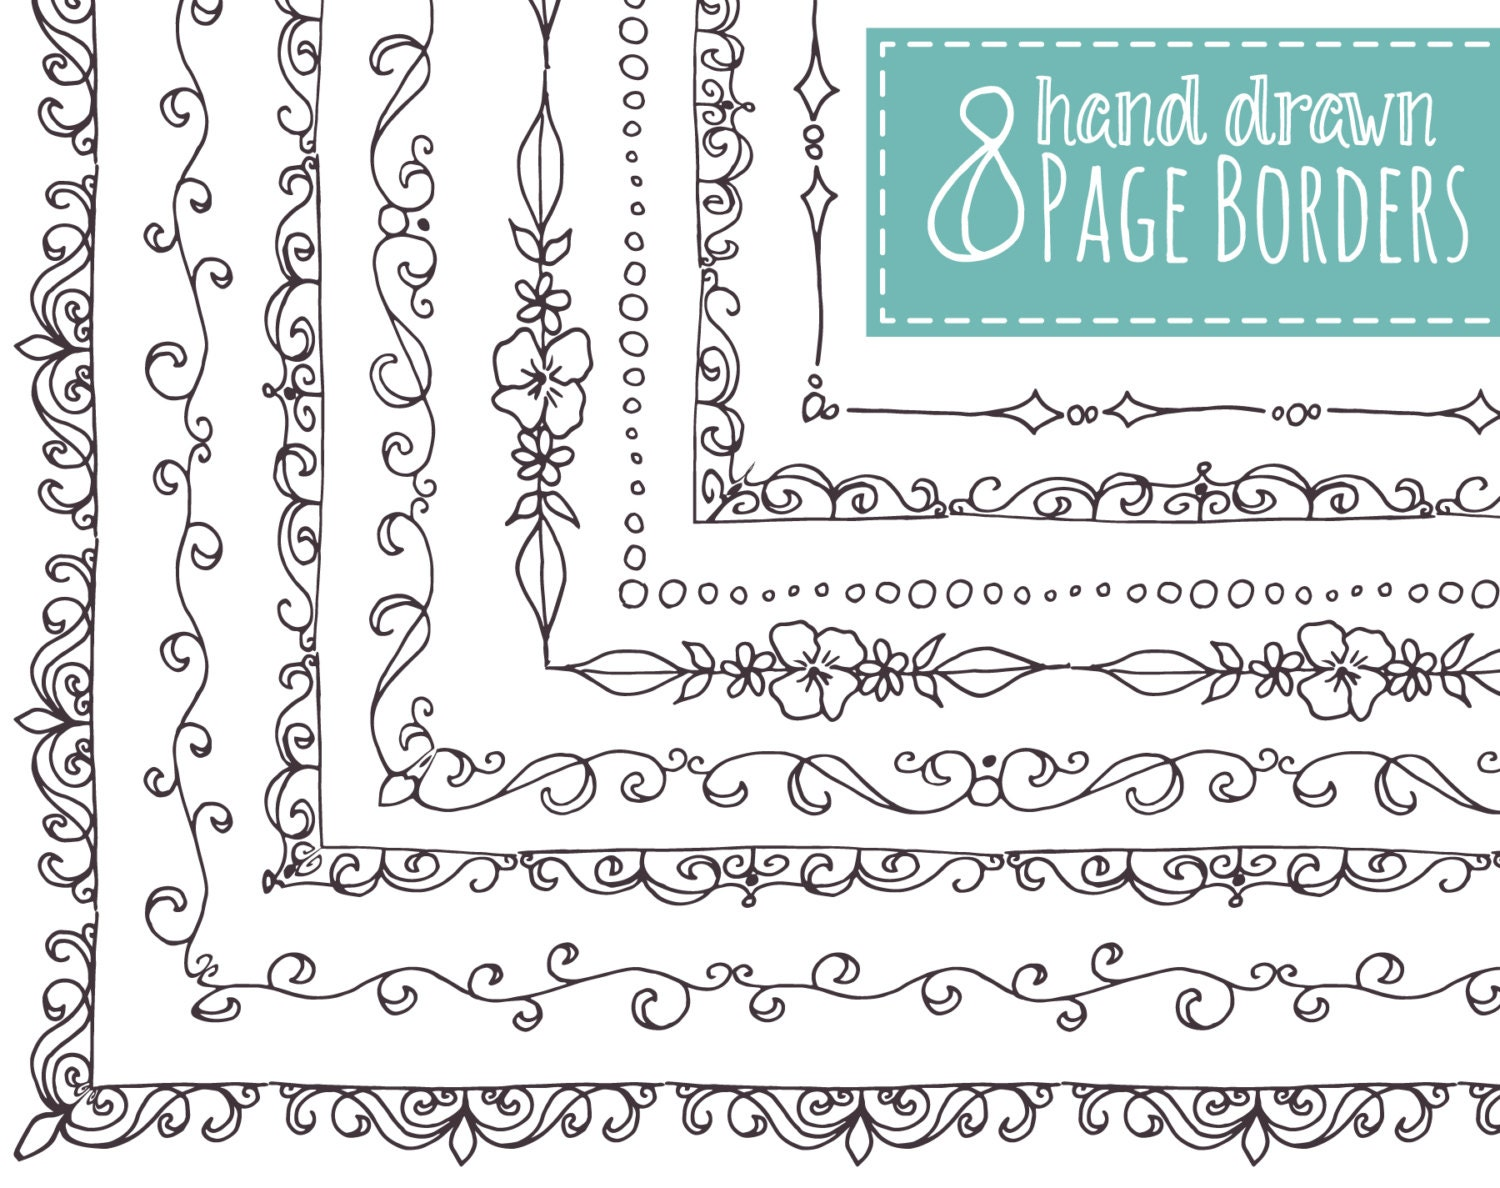 CLIP ART: 8 Page Borders // Hand Drawn Frames // Doodle //